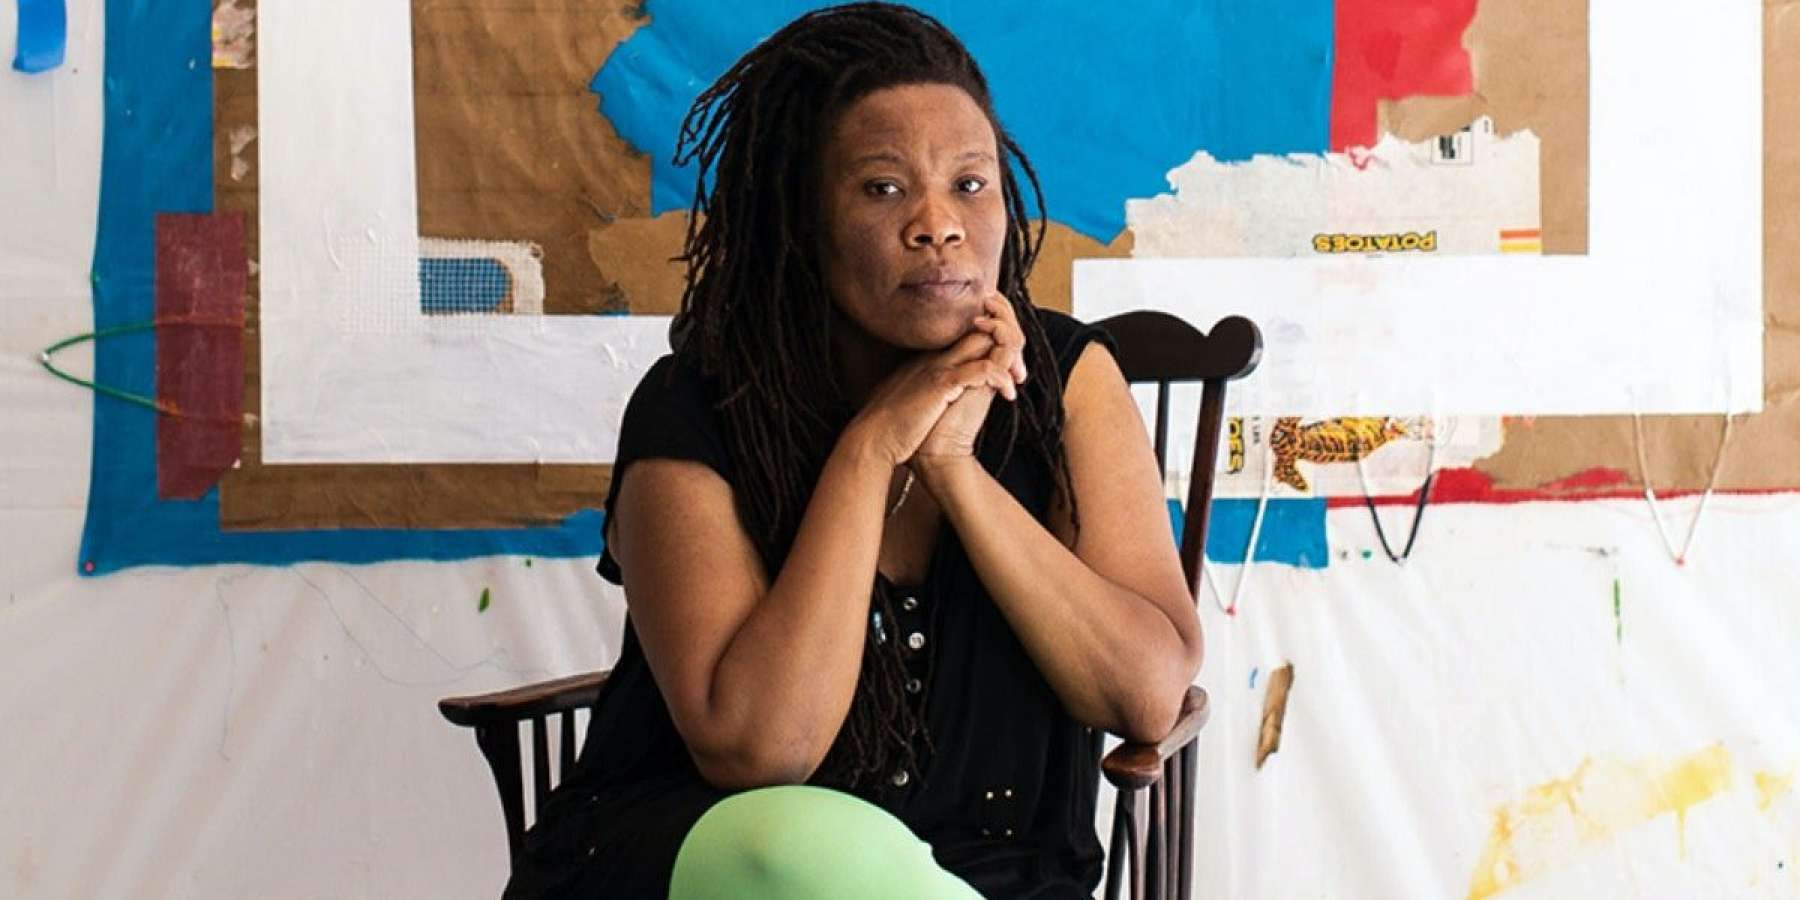 Tomashi Jackson in her studio at The Watermill Center, June 2021. Photo: Copyright Jessica Dalene, courtesy of The Watermill Center